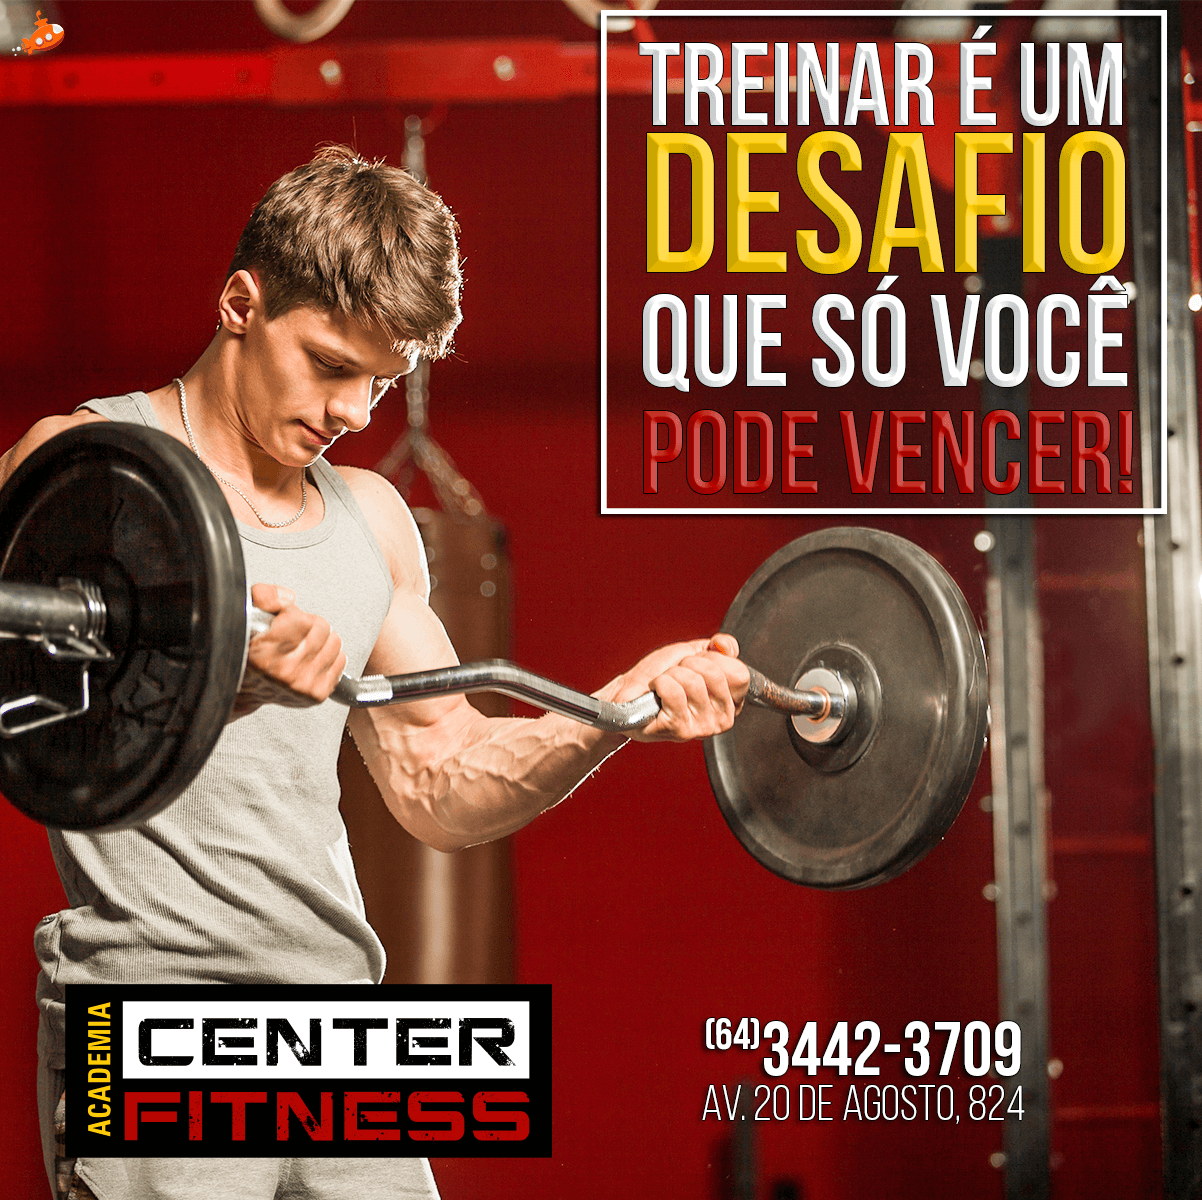 Treinar é um desafio - Center Fit